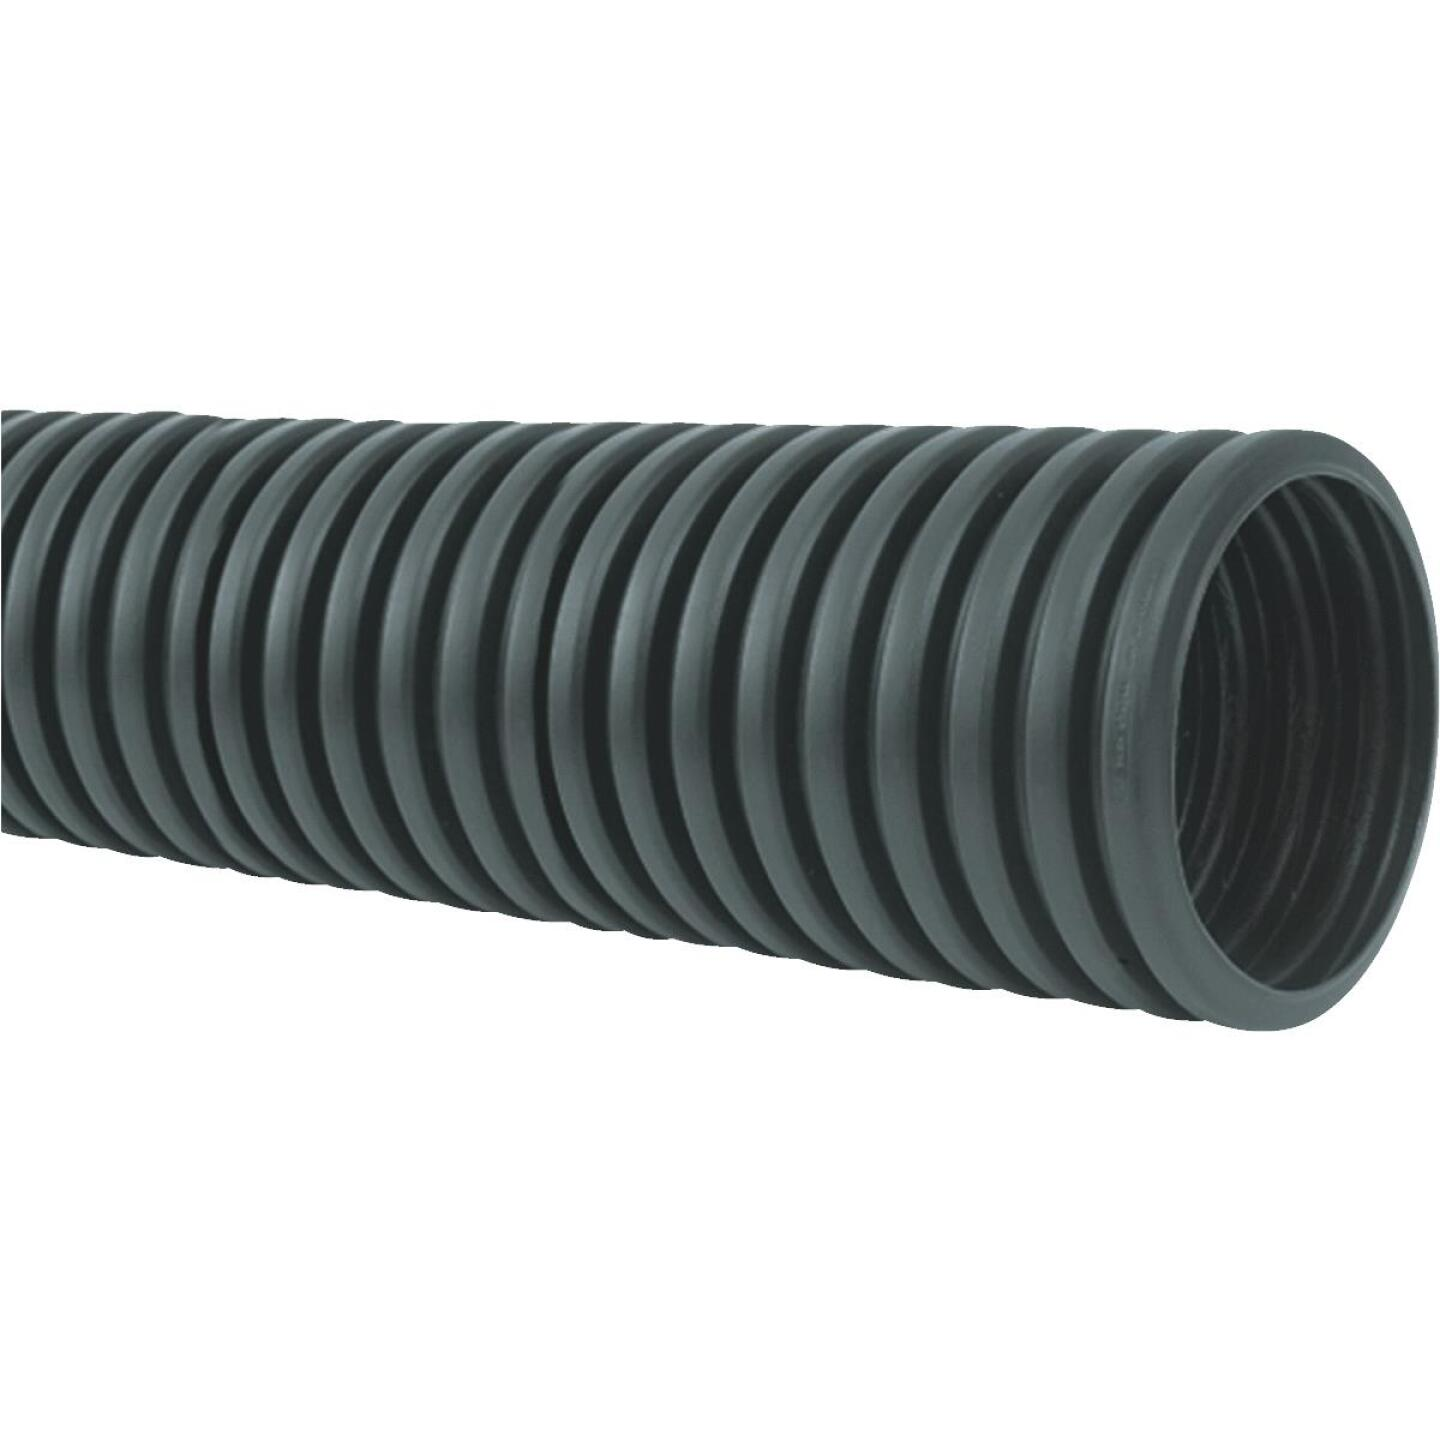 Advanced Basement 3 In. X 10 Ft. Polyethylene Corrugated Solid Pipe Image 1